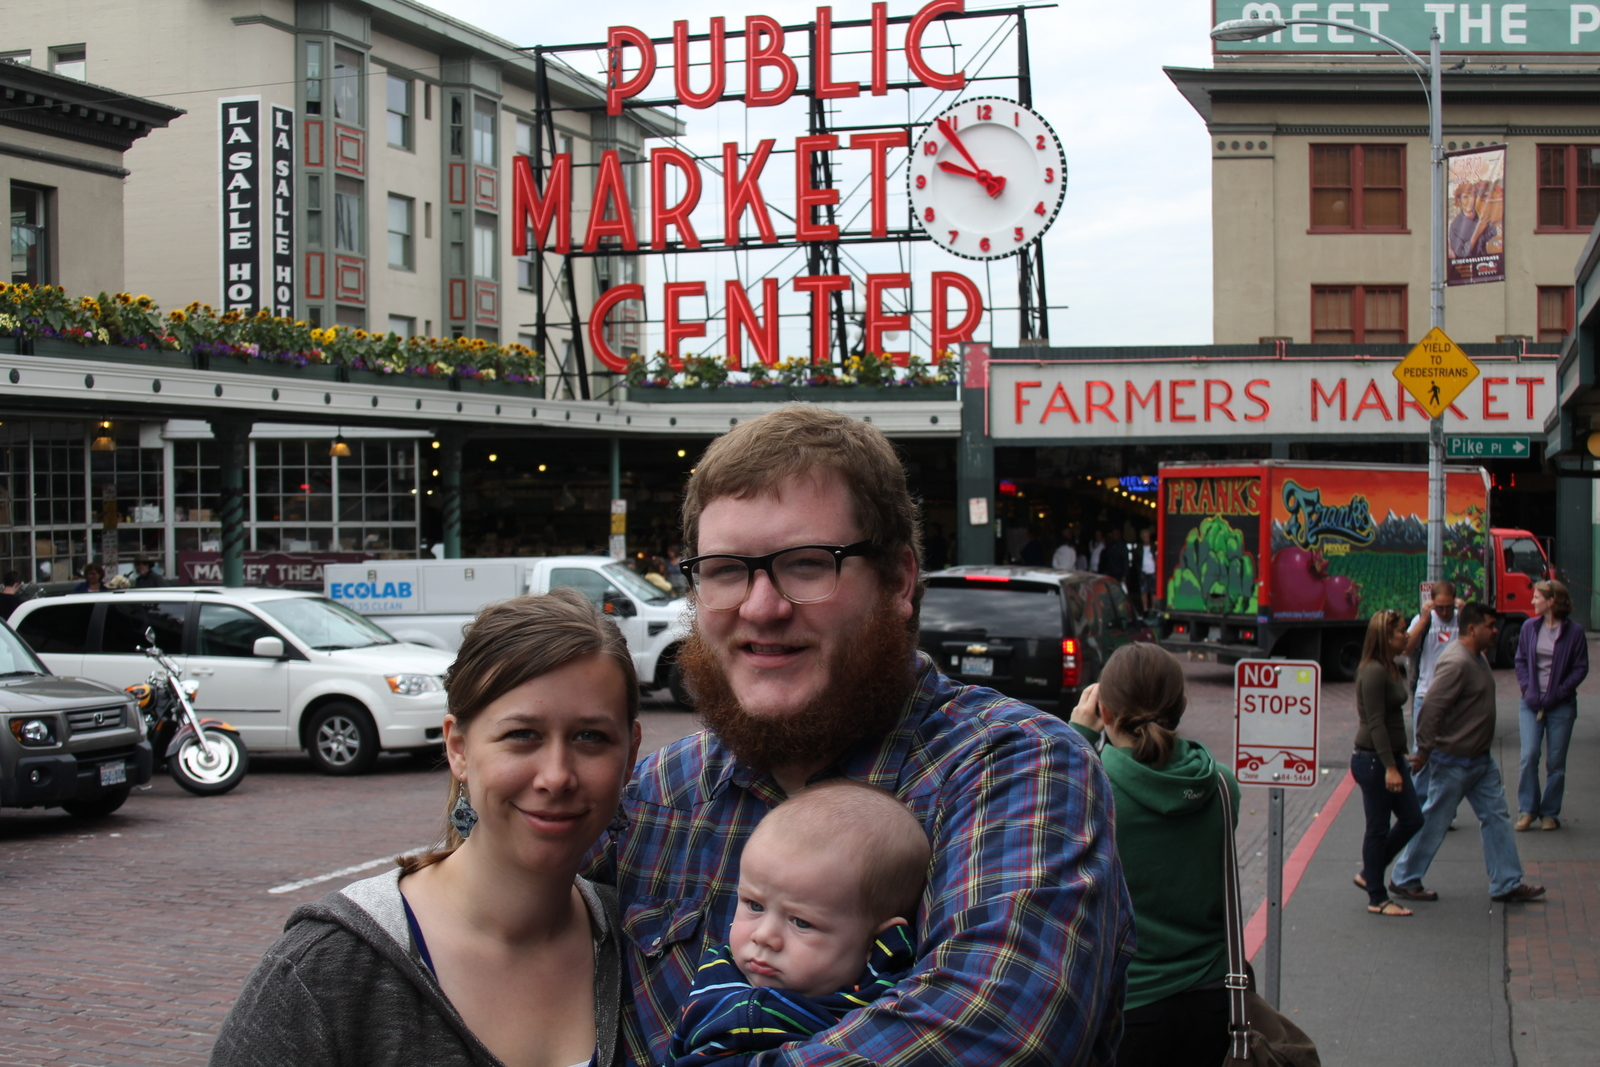 The family at Pike's Market